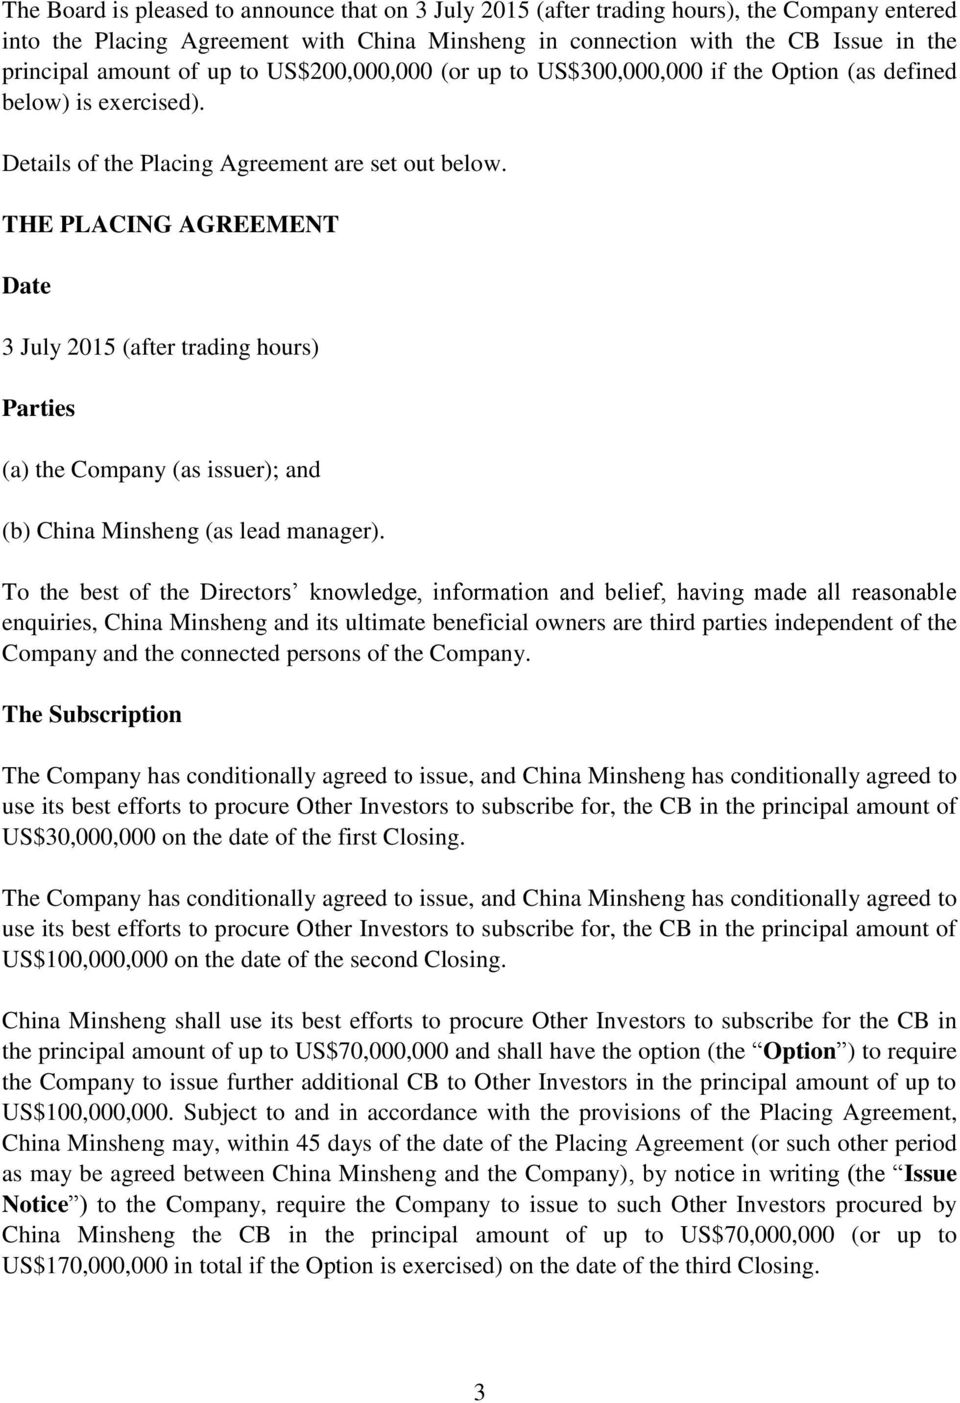 THE PLACING AGREEMENT Date 3 July 2015 (after trading hours) Parties (a) the Company (as issuer); and (b) China Minsheng (as lead manager).